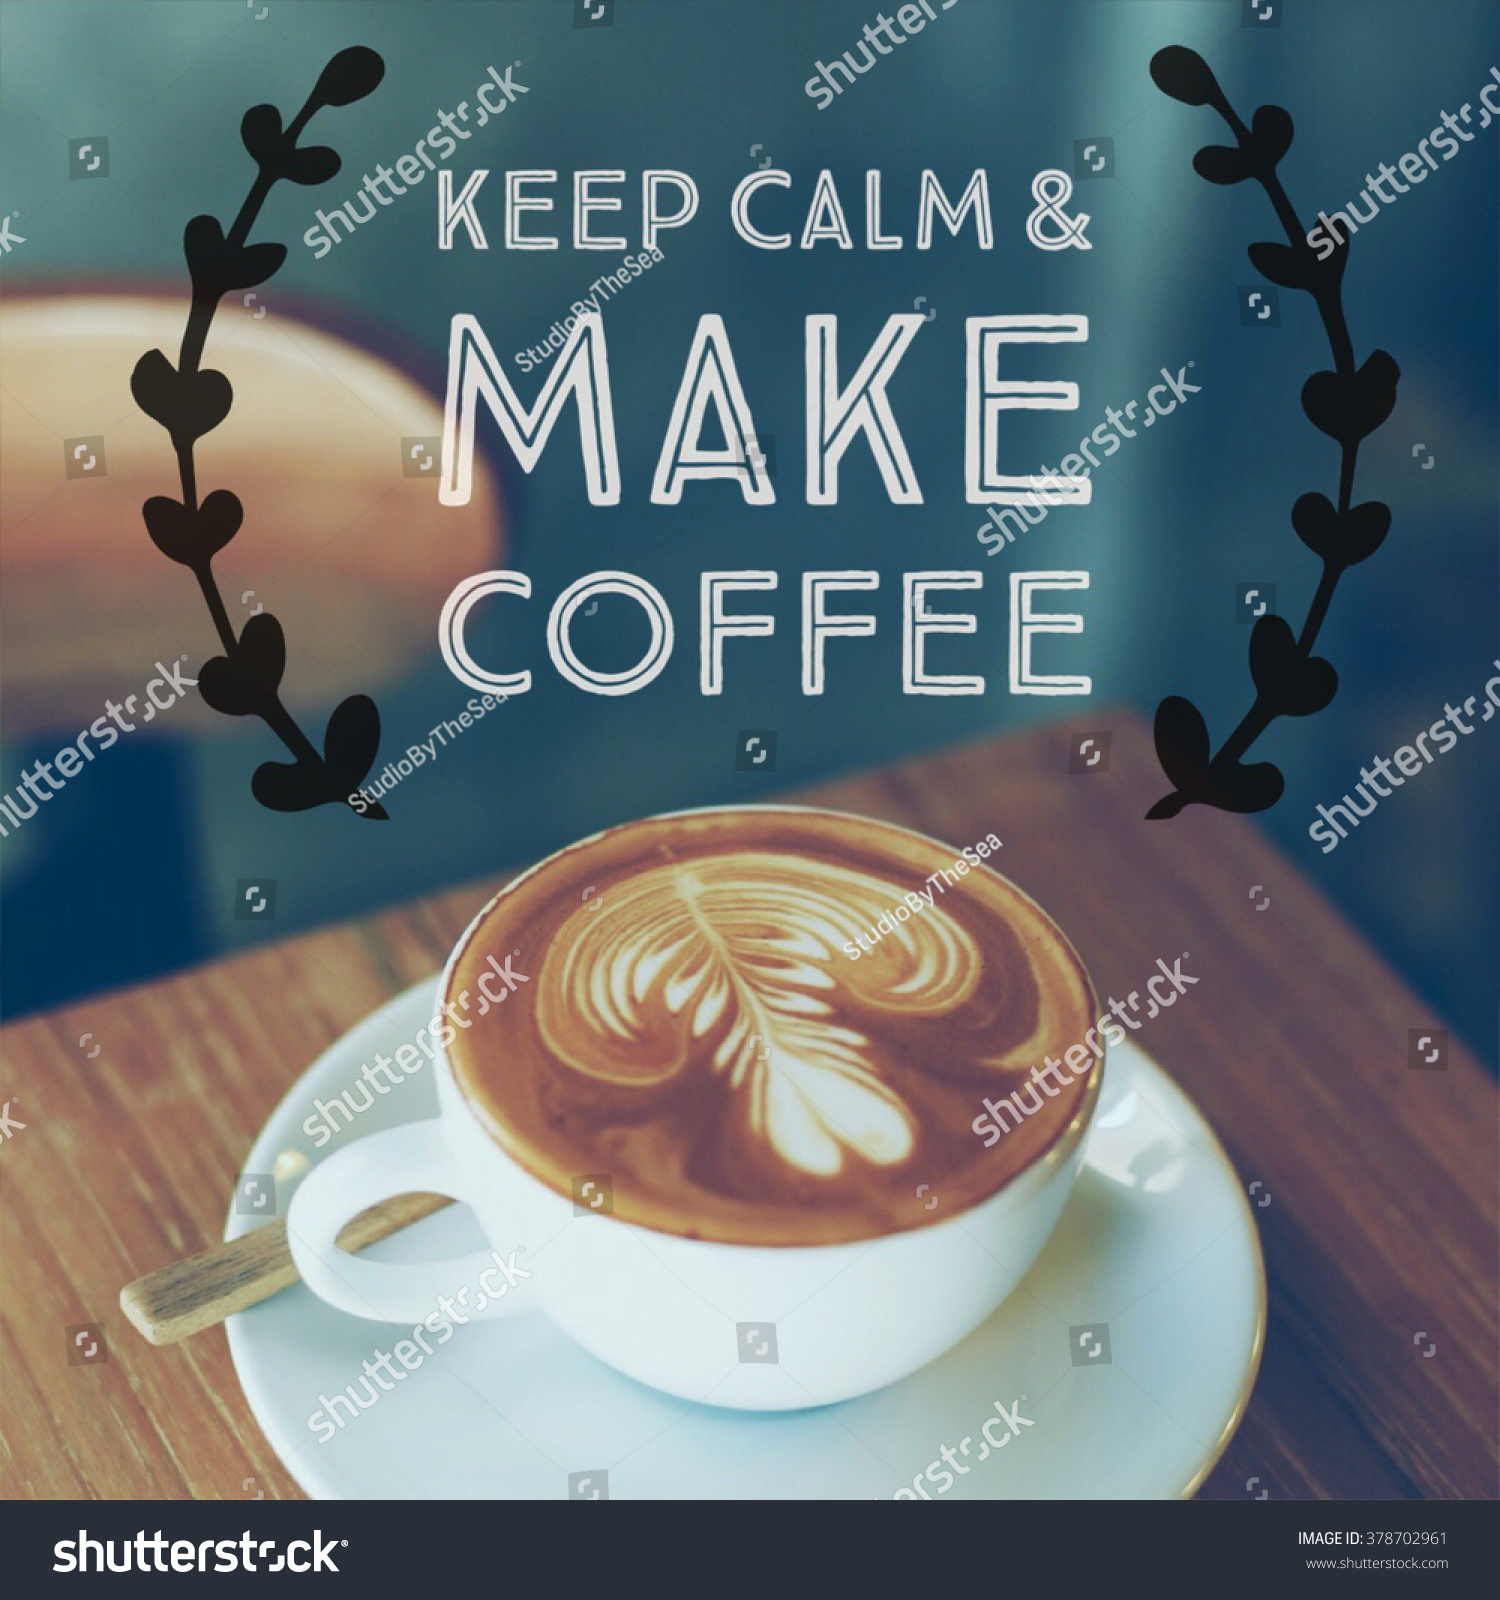 Coffee Quote Inspire On Coffee Latte Background Vintage Color Filter